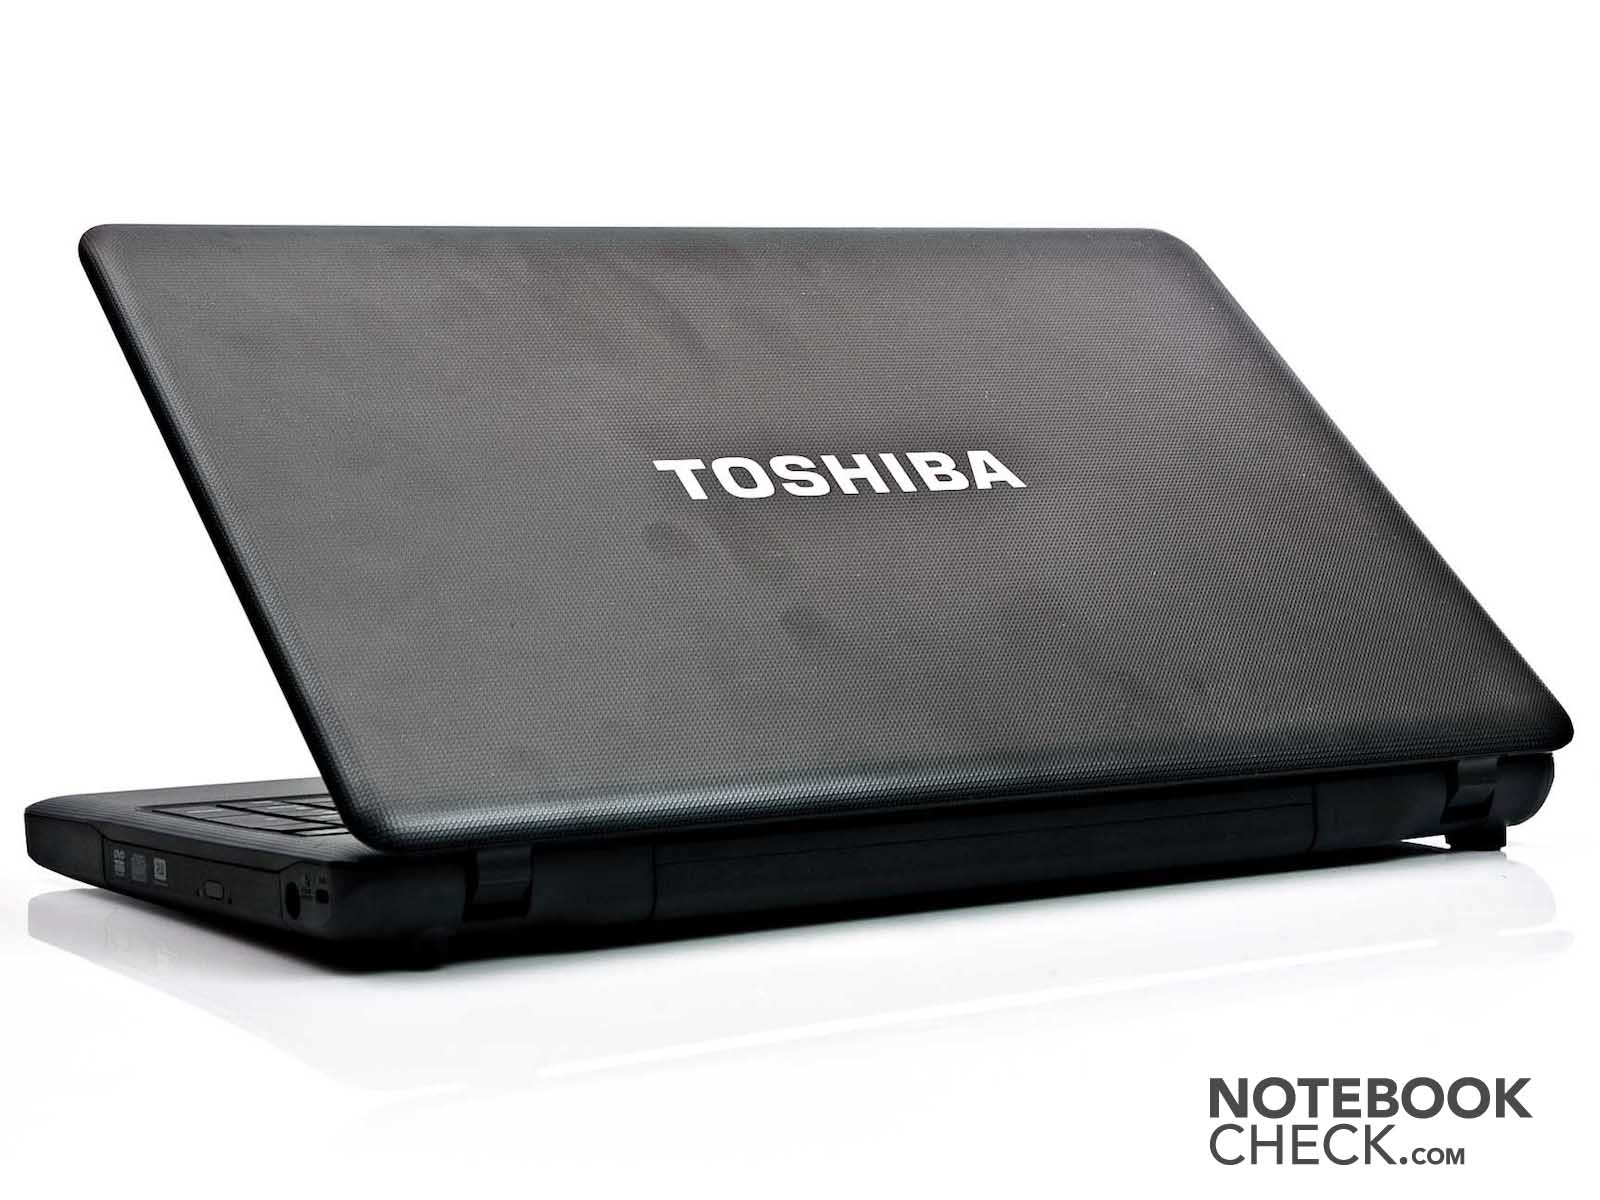 toshiba notebook Explore toshiba's innovative line of laptops, tablets, tvs, blu-ray players, hdds  and camcorders get access to reviews, features and tech guides to find the best .